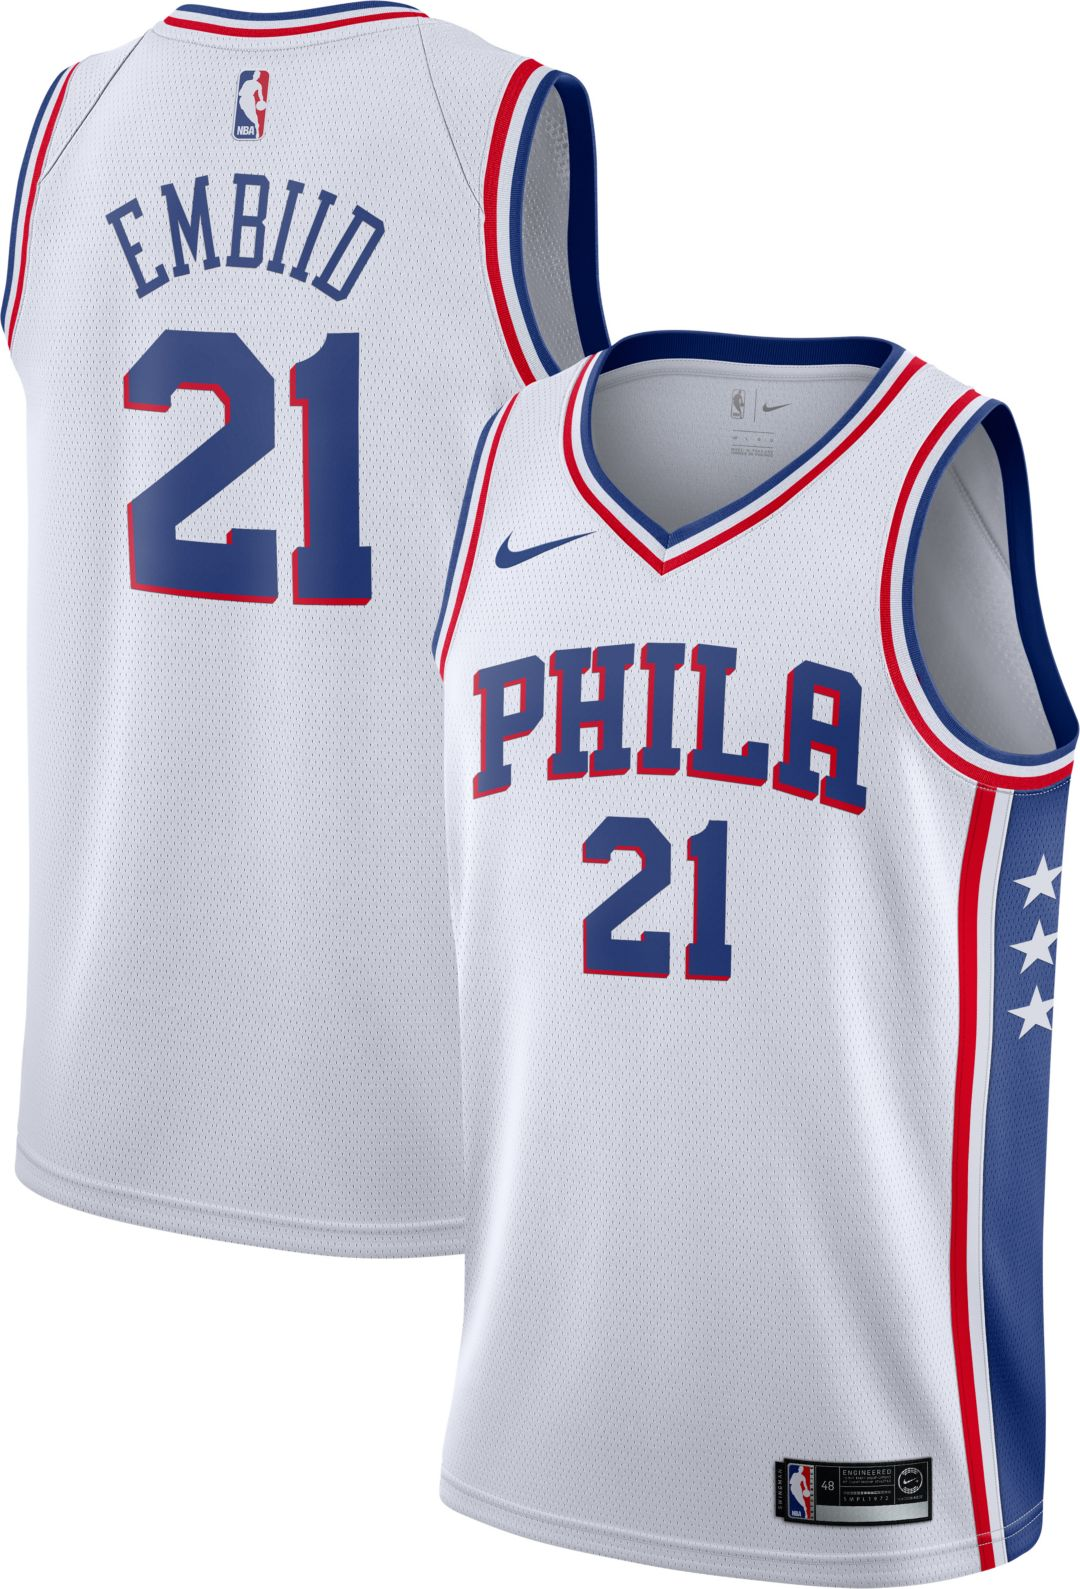 outlet store 3258d 80417 Nike Men's Philadelphia 76ers Joel Embiid #21 White Dri-FIT Swingman Jersey